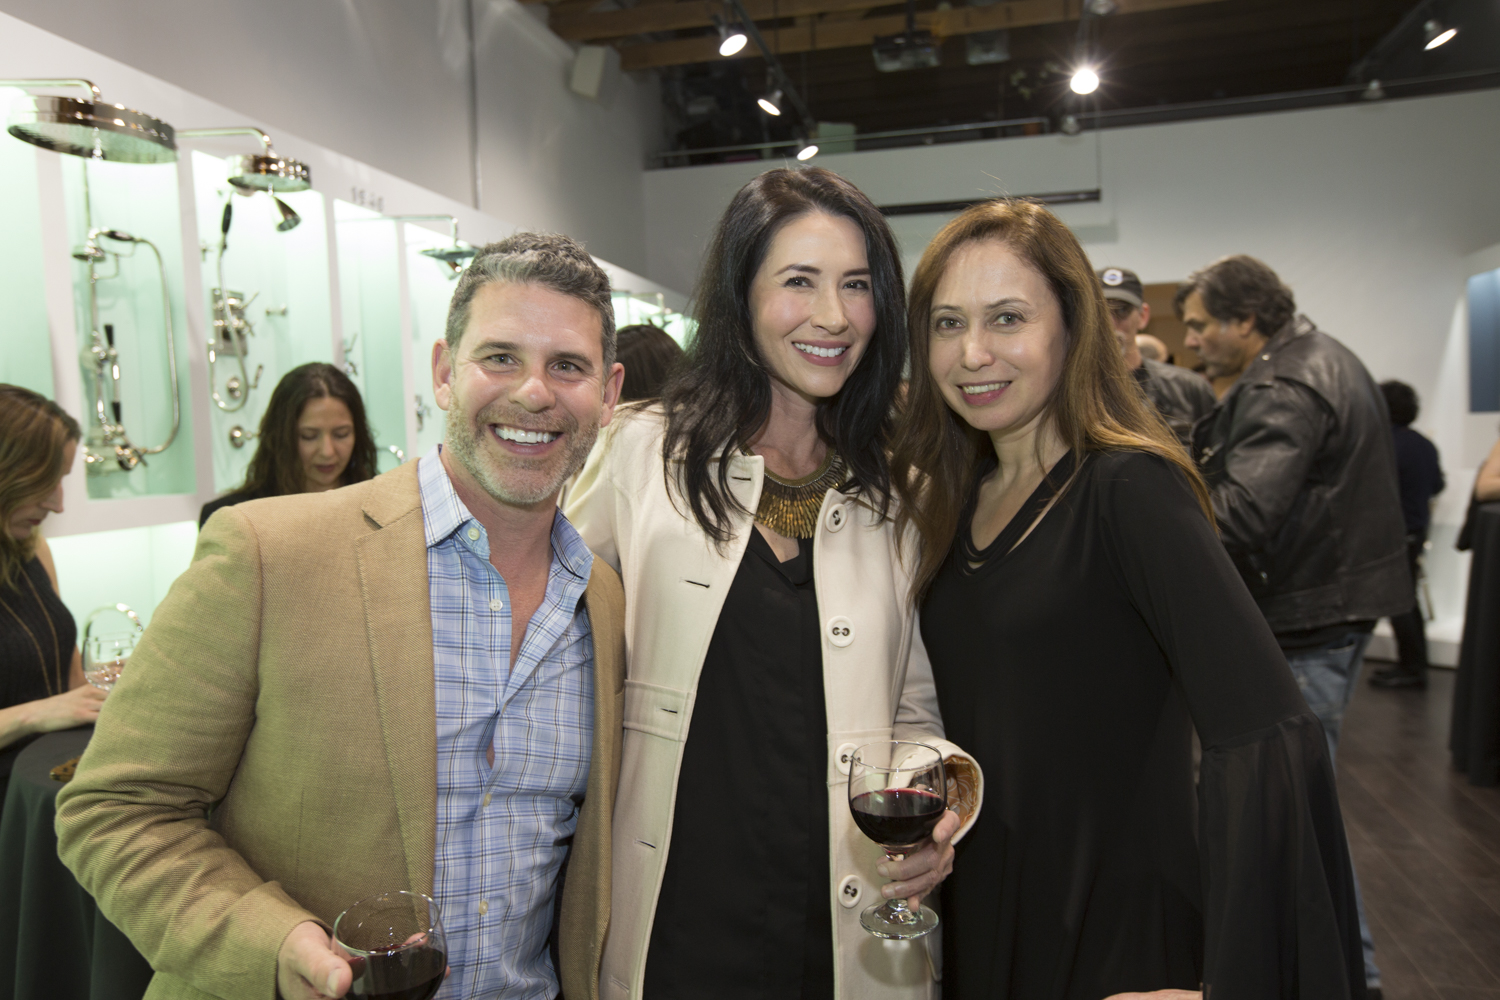 Jason Zimmerman, Nicole Coffman and Virginia Guillian